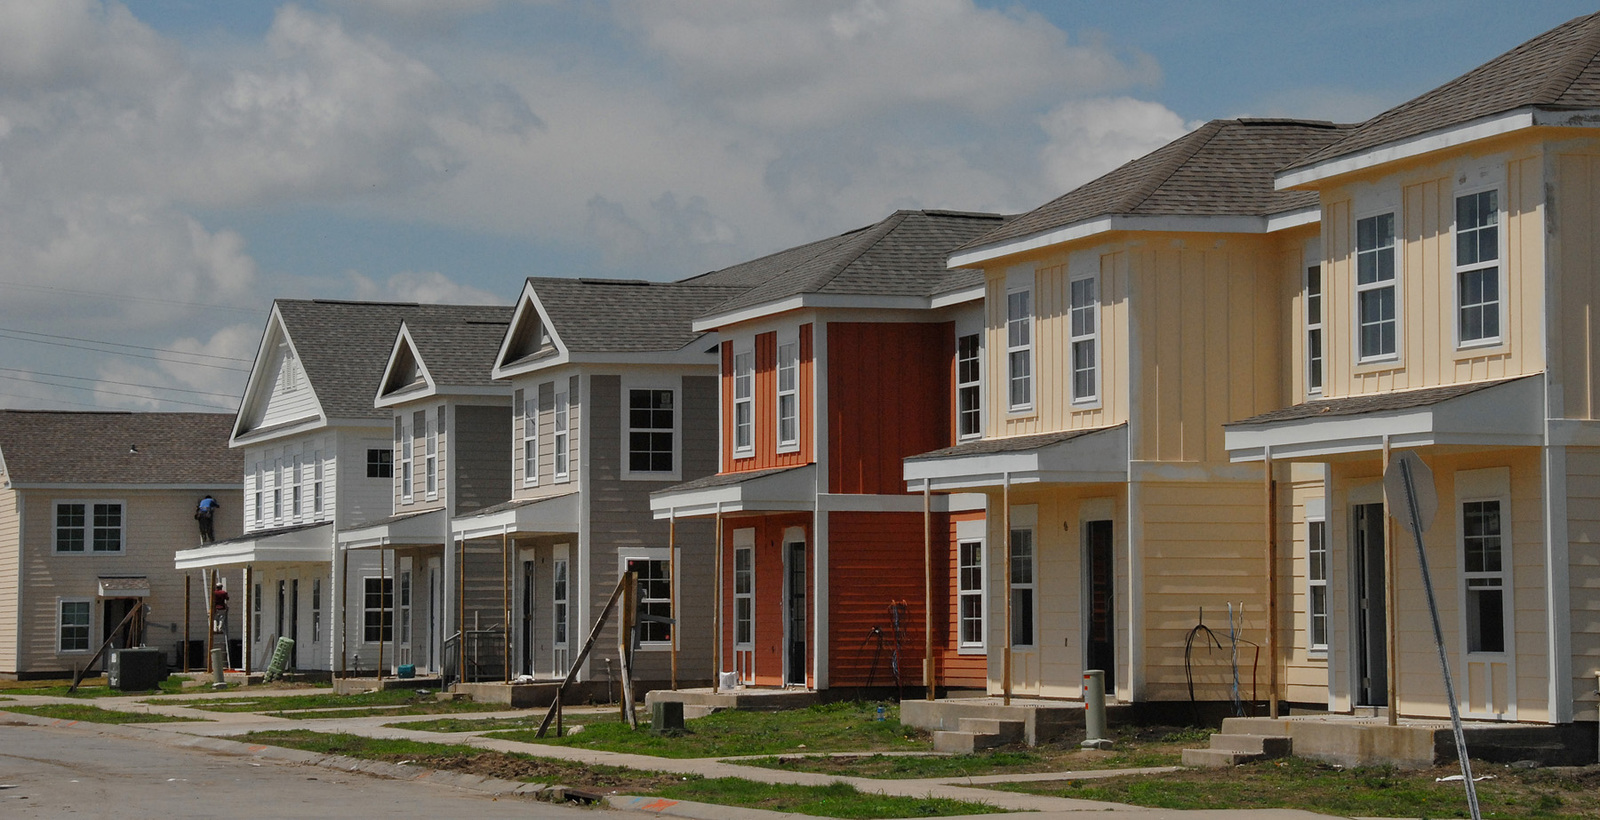 New public housing in New Orleans, Louisiana opened  [in the aftermath of] Hurricane Katrina.  Secretary Alphonso Jackson [led opening ceremonies.]